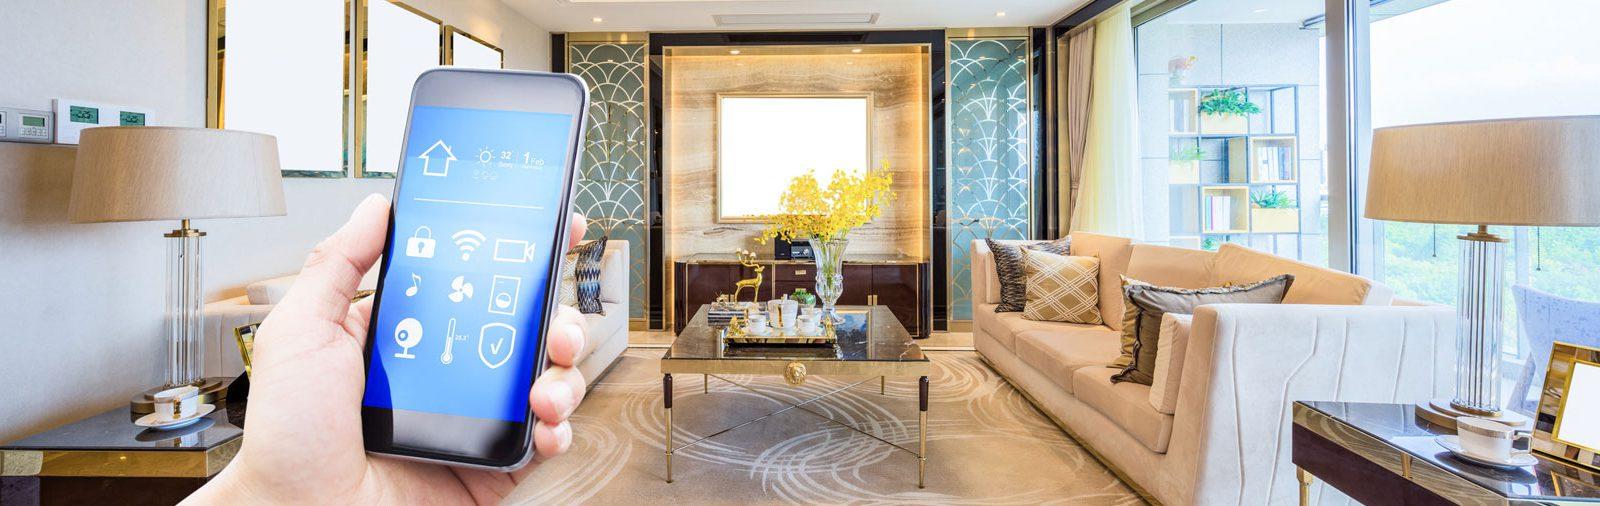 Mobile phone controlling Home Automation - Qualicum Beach, Parksville, Nanaimo electricians